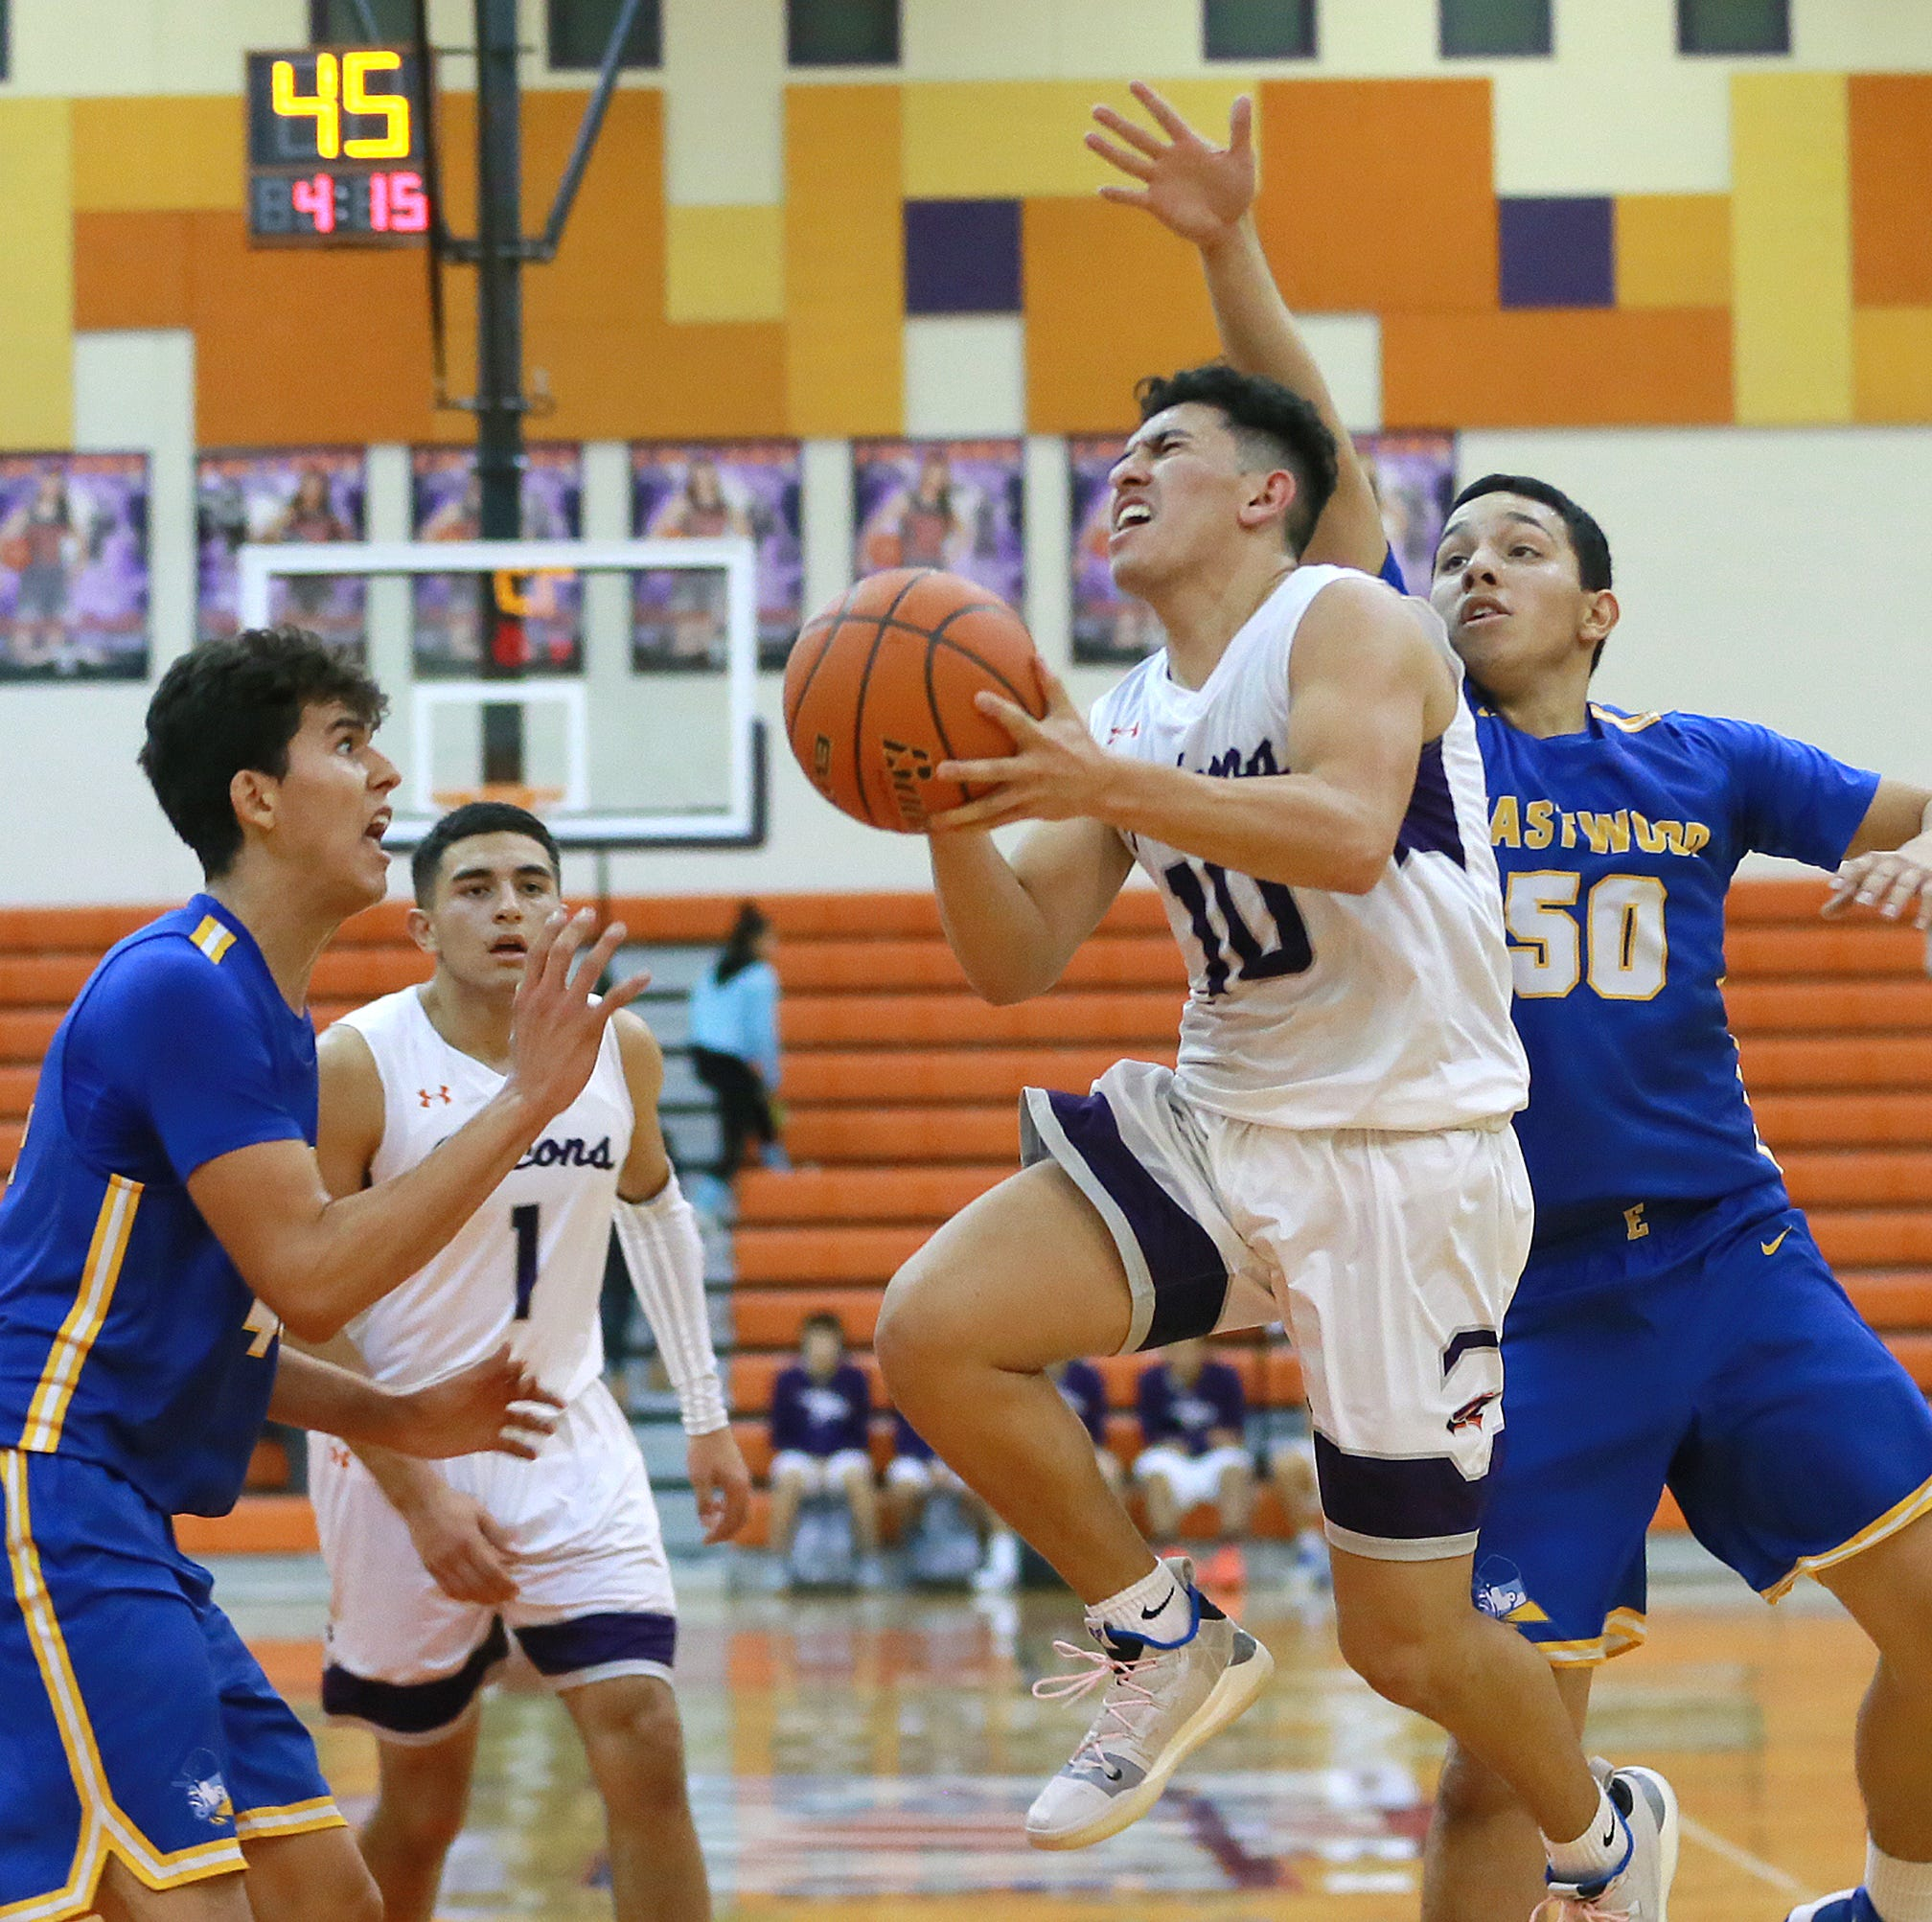 El Paso high school sports schedule for Tuesday, Jan. 22